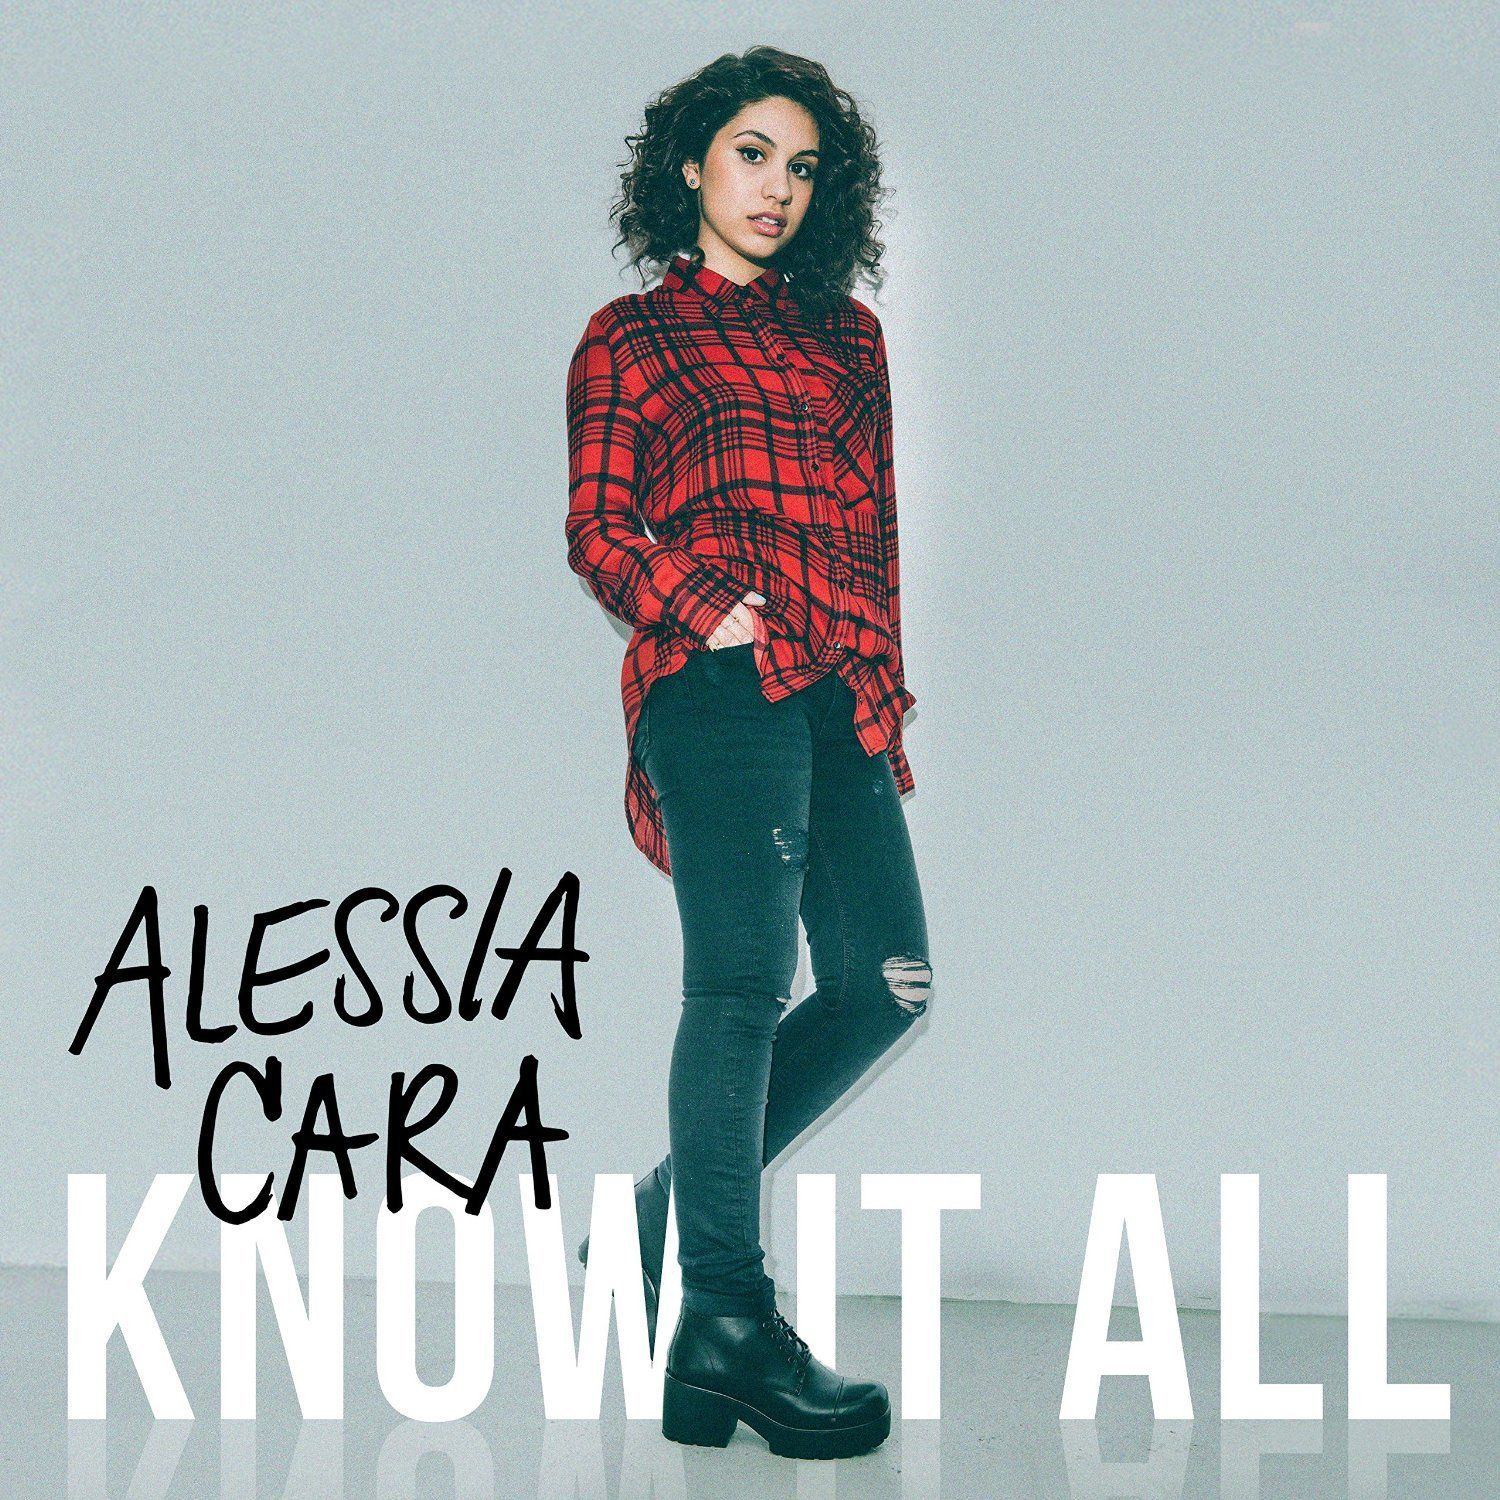 """Know-It-All - Alessia Cara // featuring the smash hit """"Here."""" #PublicLibraryOfBrookline"""